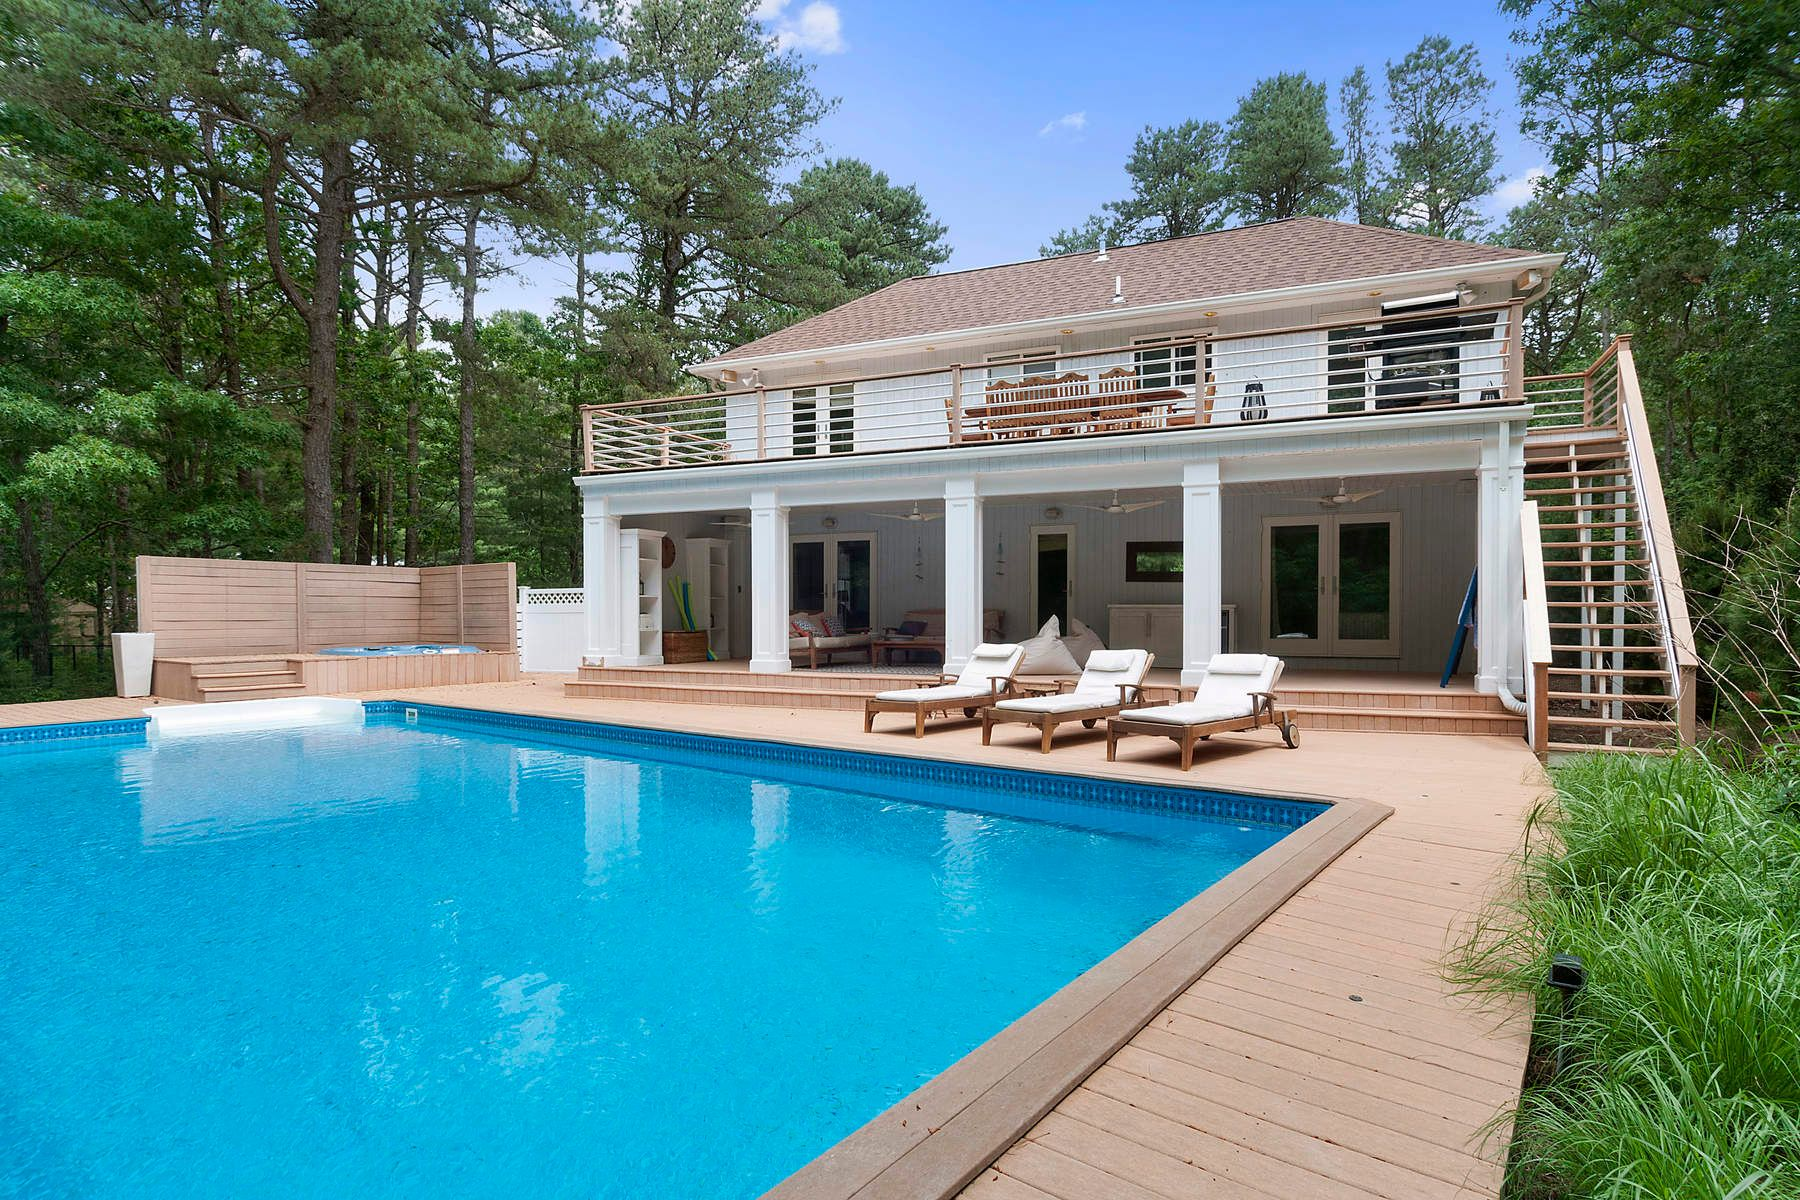 Single Family Home for Rent at PERFECTLY RENOVATED AND PRIVATE 65 Edwards Hole Road East Hampton, New York 11937 United States